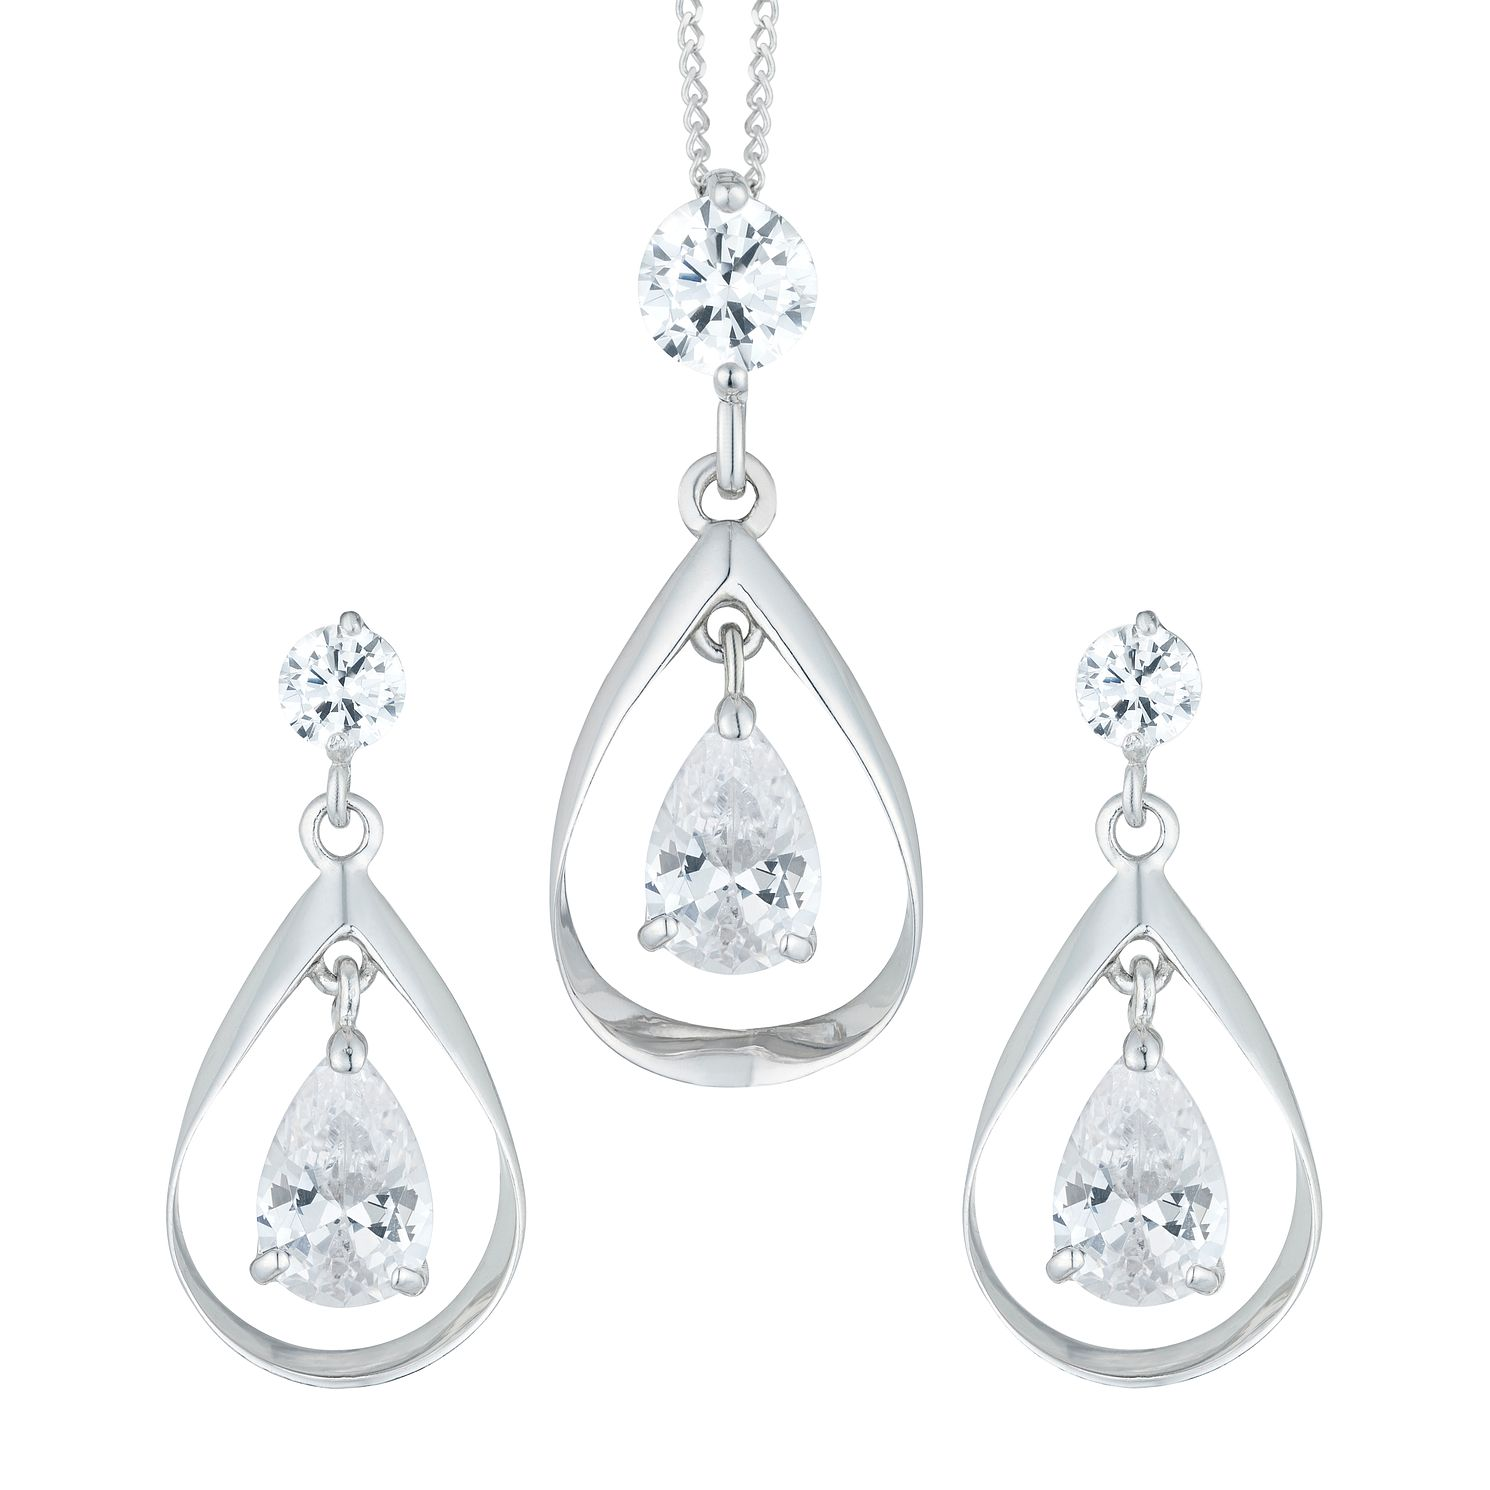 9ct White Gold Cubic Zirconia Double Drop Earrings & Pendant - Product number 6114660